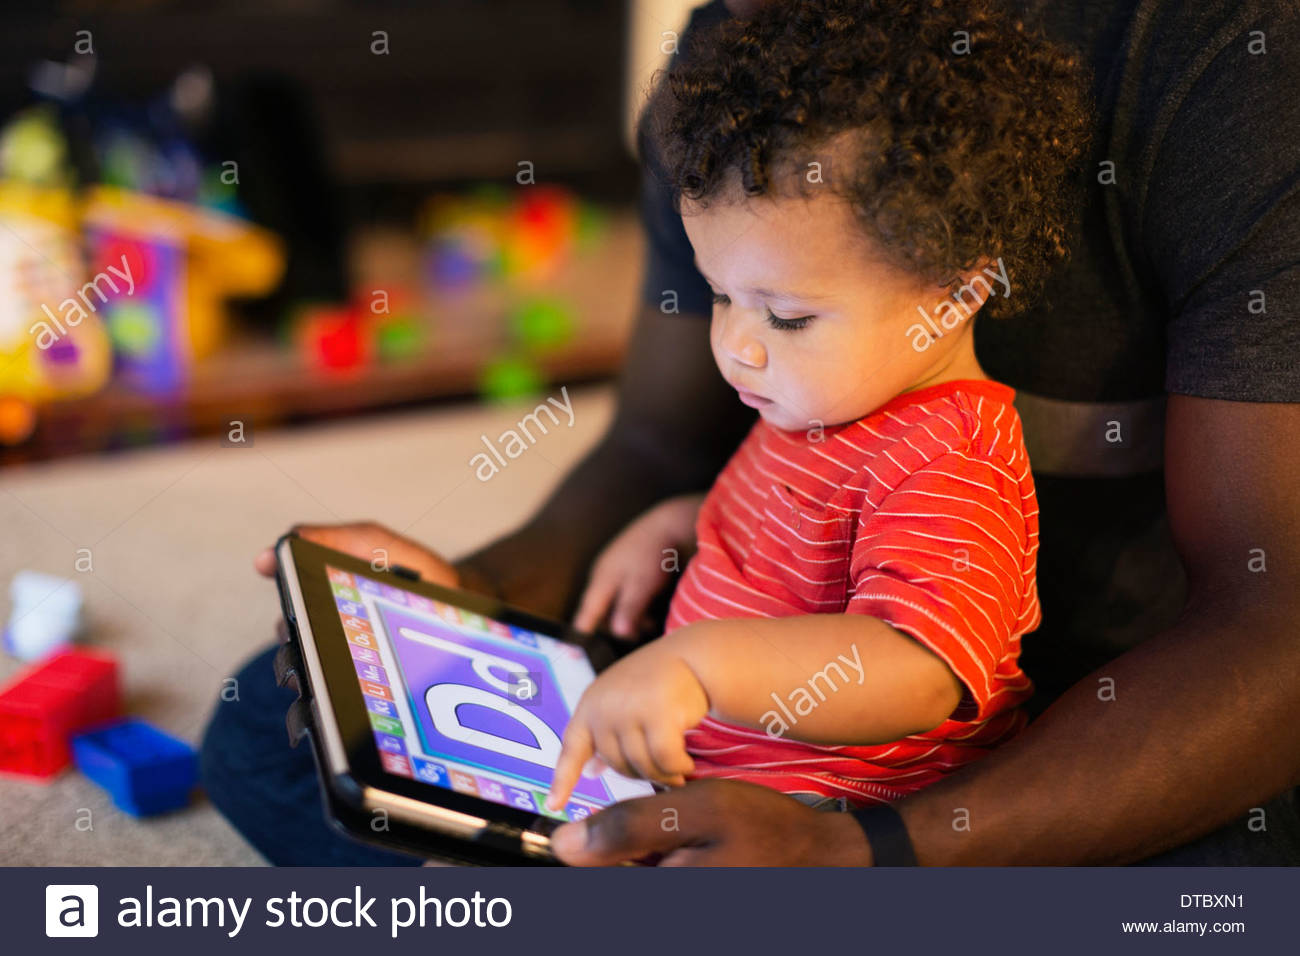 Father and son playing with digital tablet - Stock Image